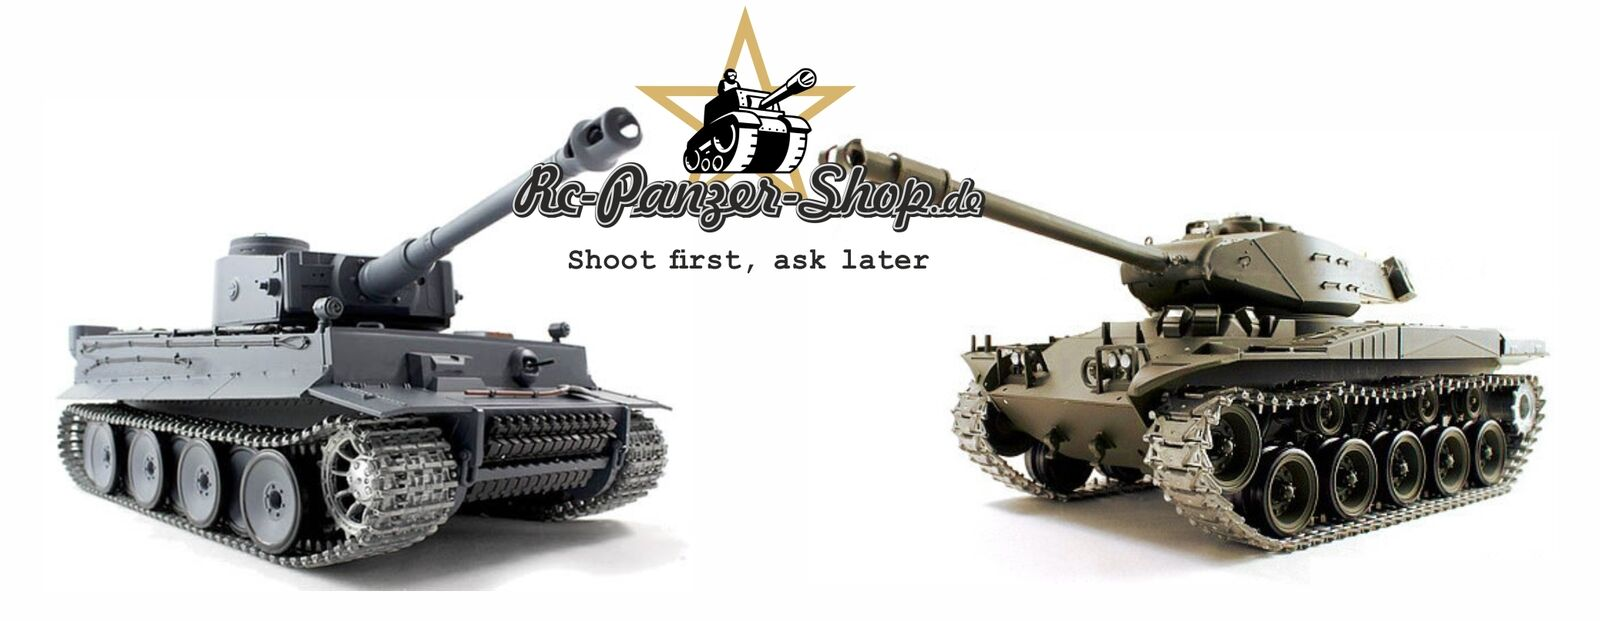 rc-panzer-shop